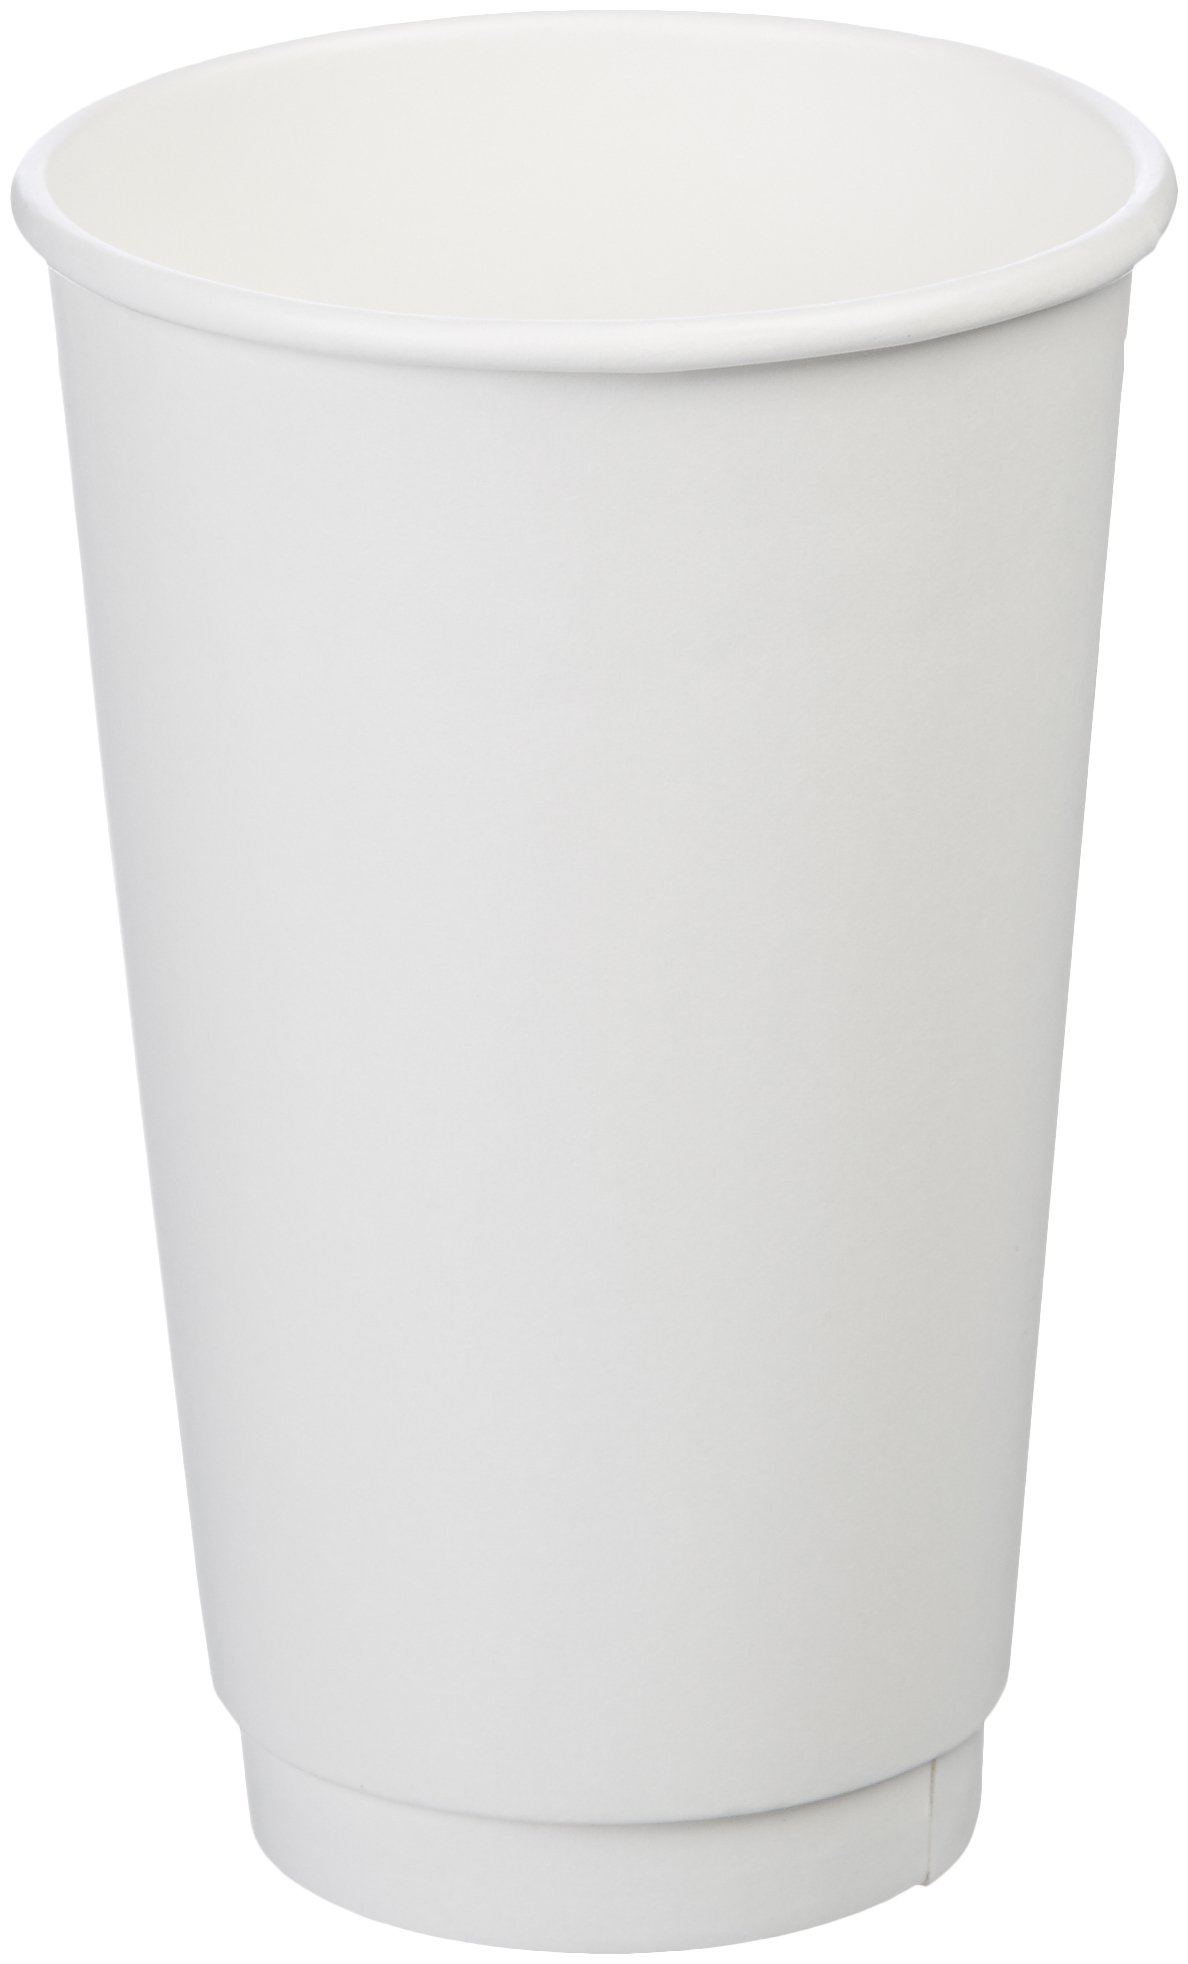 AmazonBasics Insulated Paper Cup, 16 oz, 500-Count